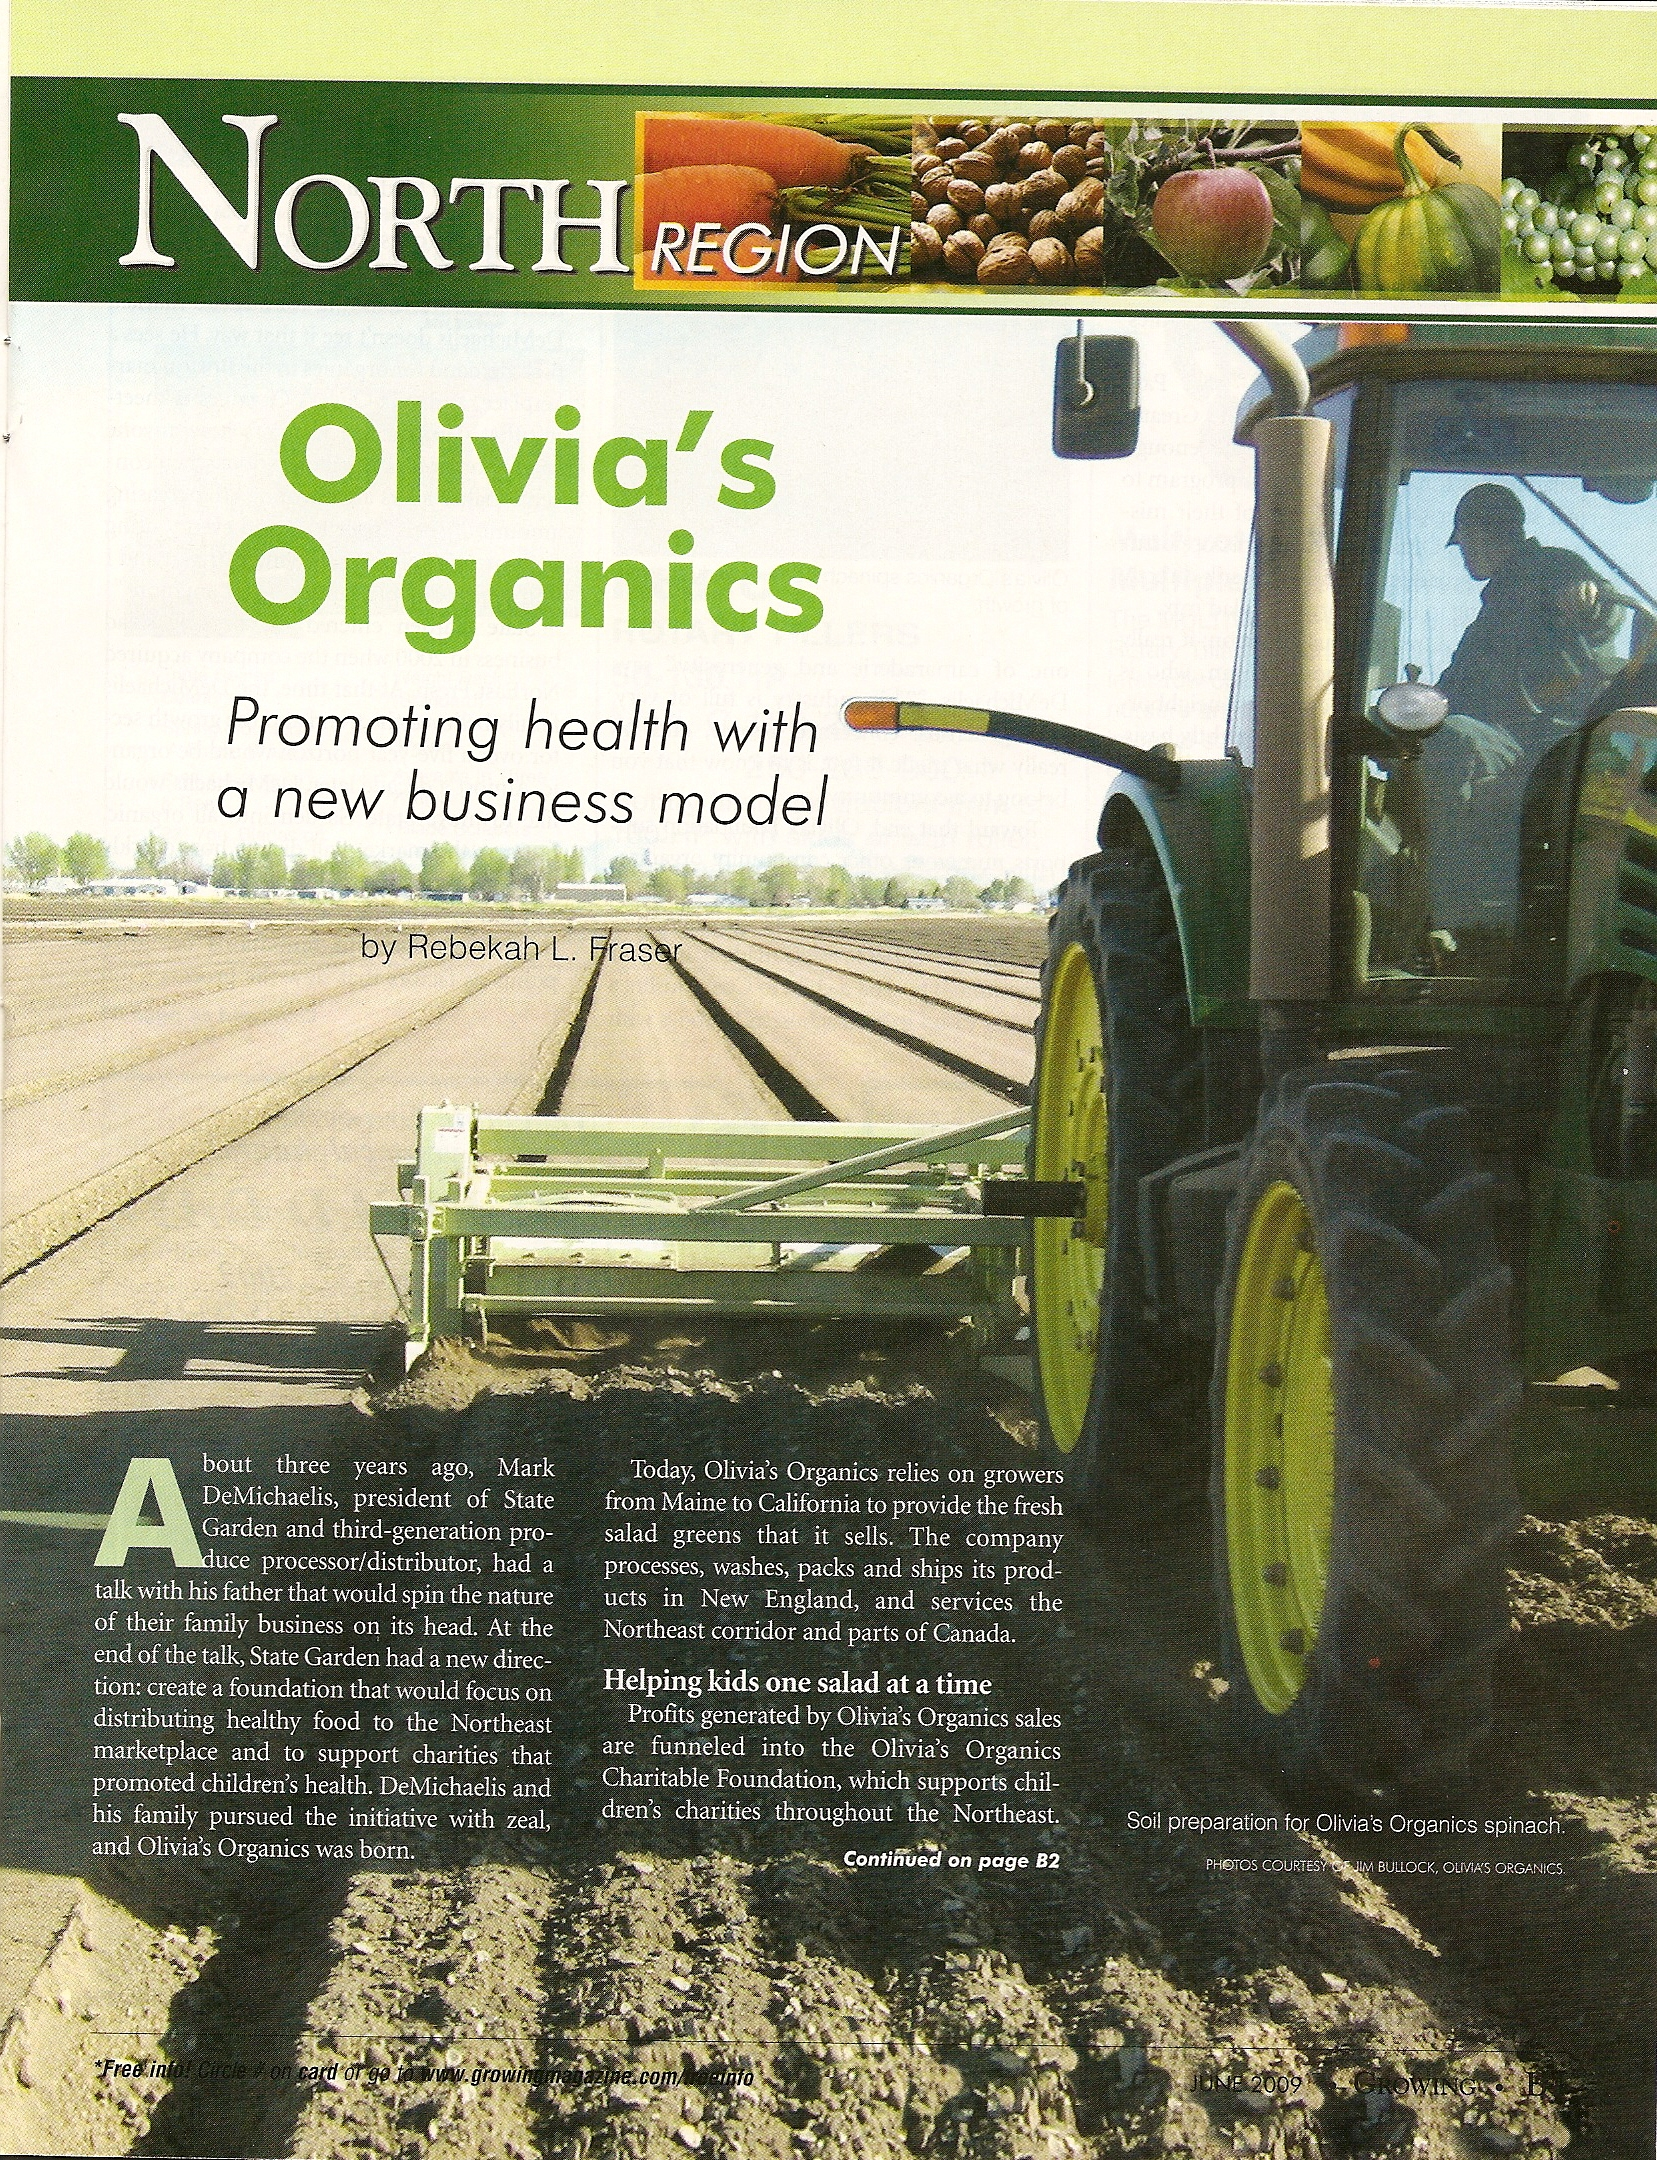 Growing- June 09 - Olivias Organics